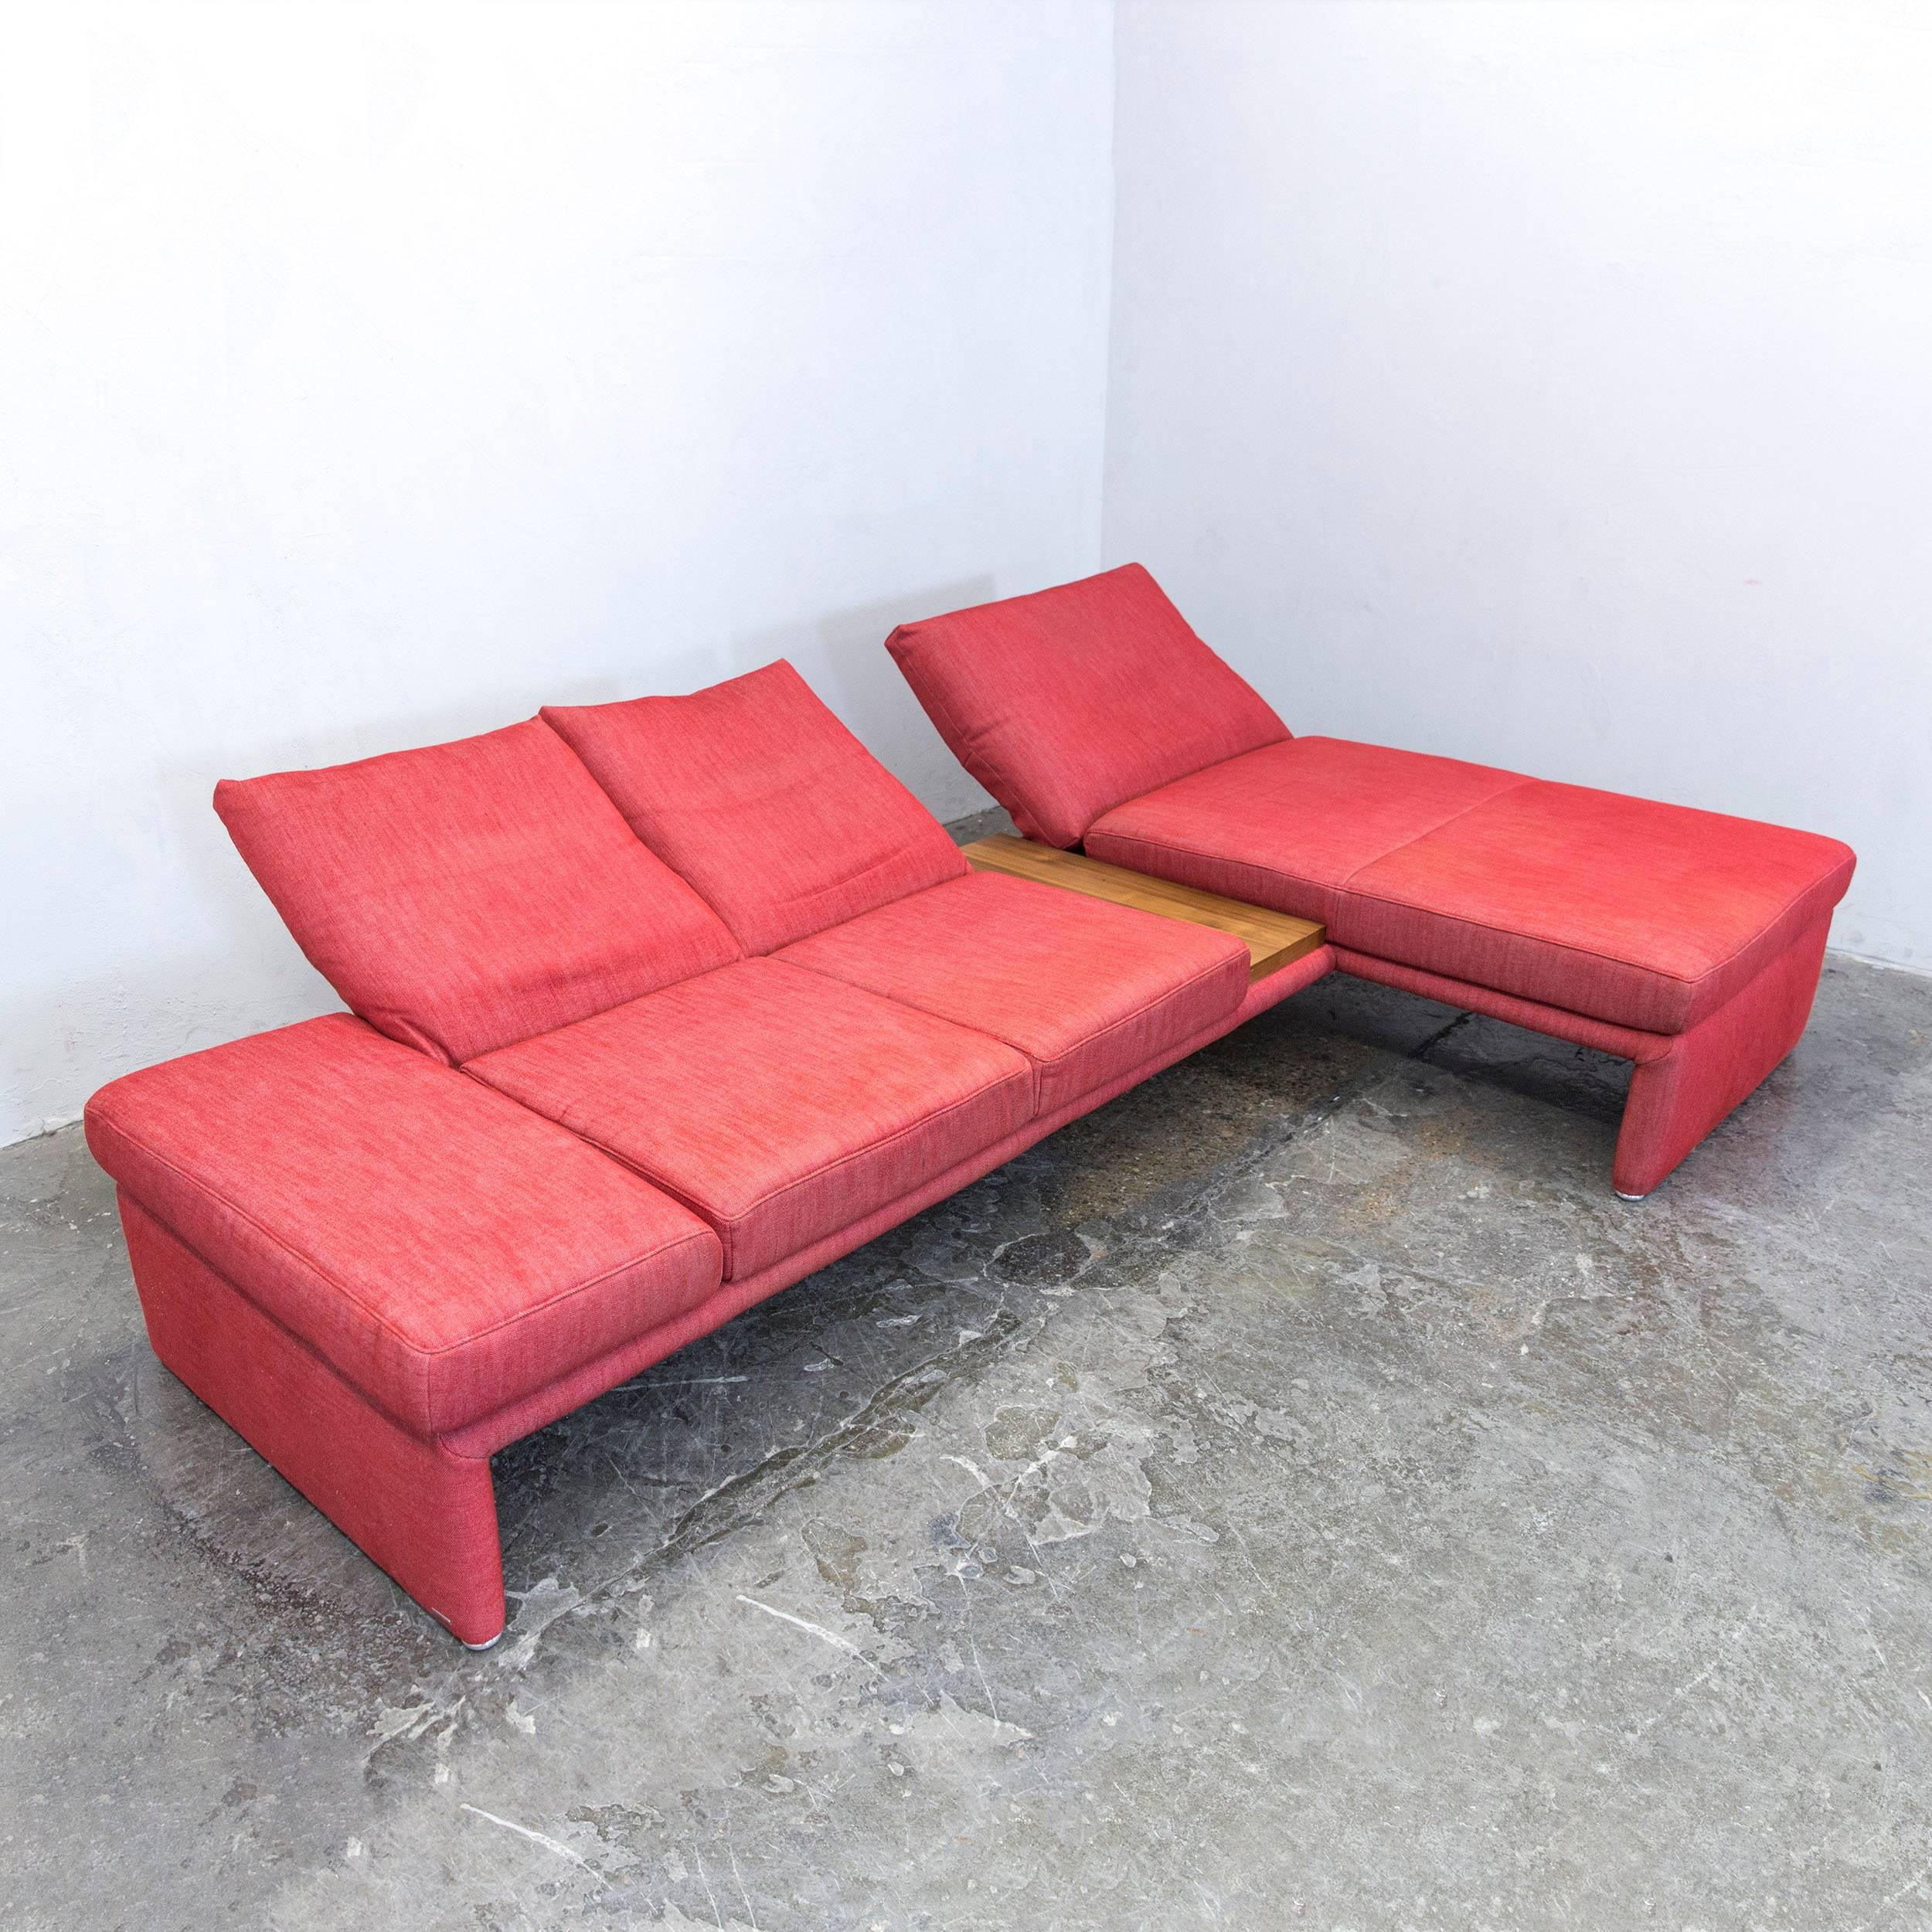 Sofa struktur and therefore very soft and cozy please for Funktions ecksofa